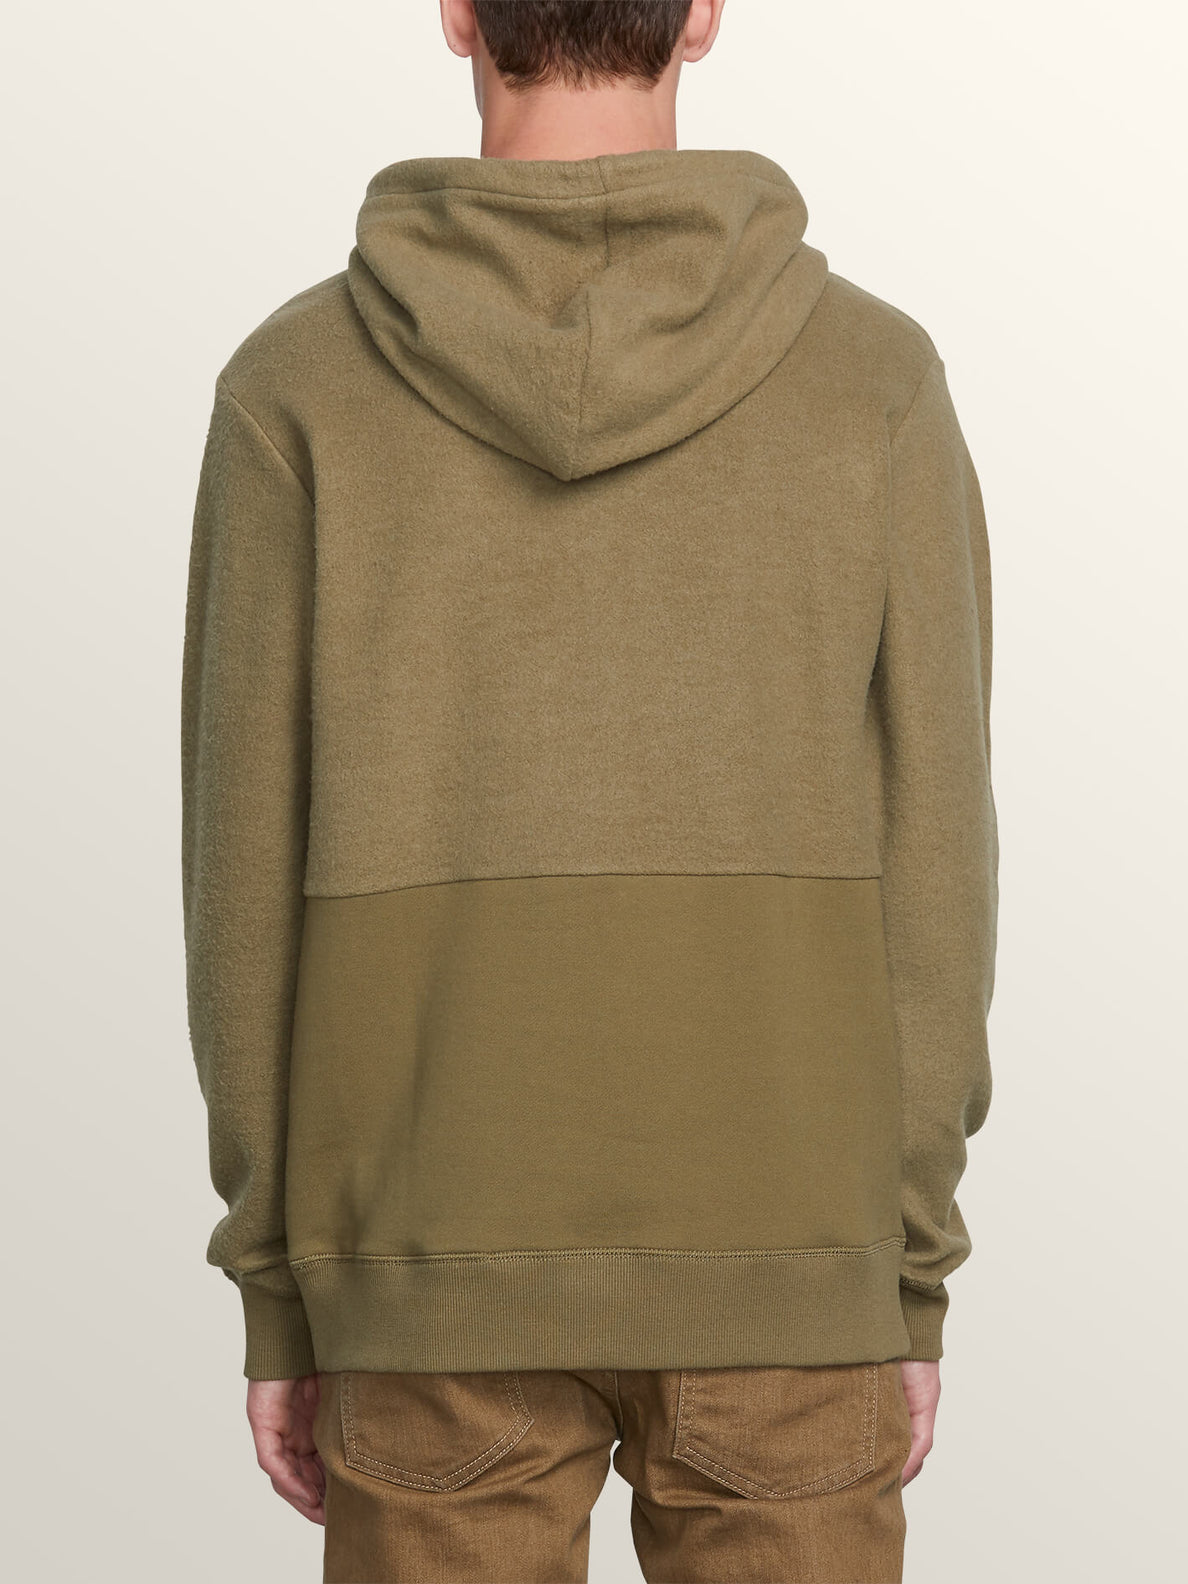 Single Stone Sub Division Pullover Hoodie In Vineyard Green, Back View